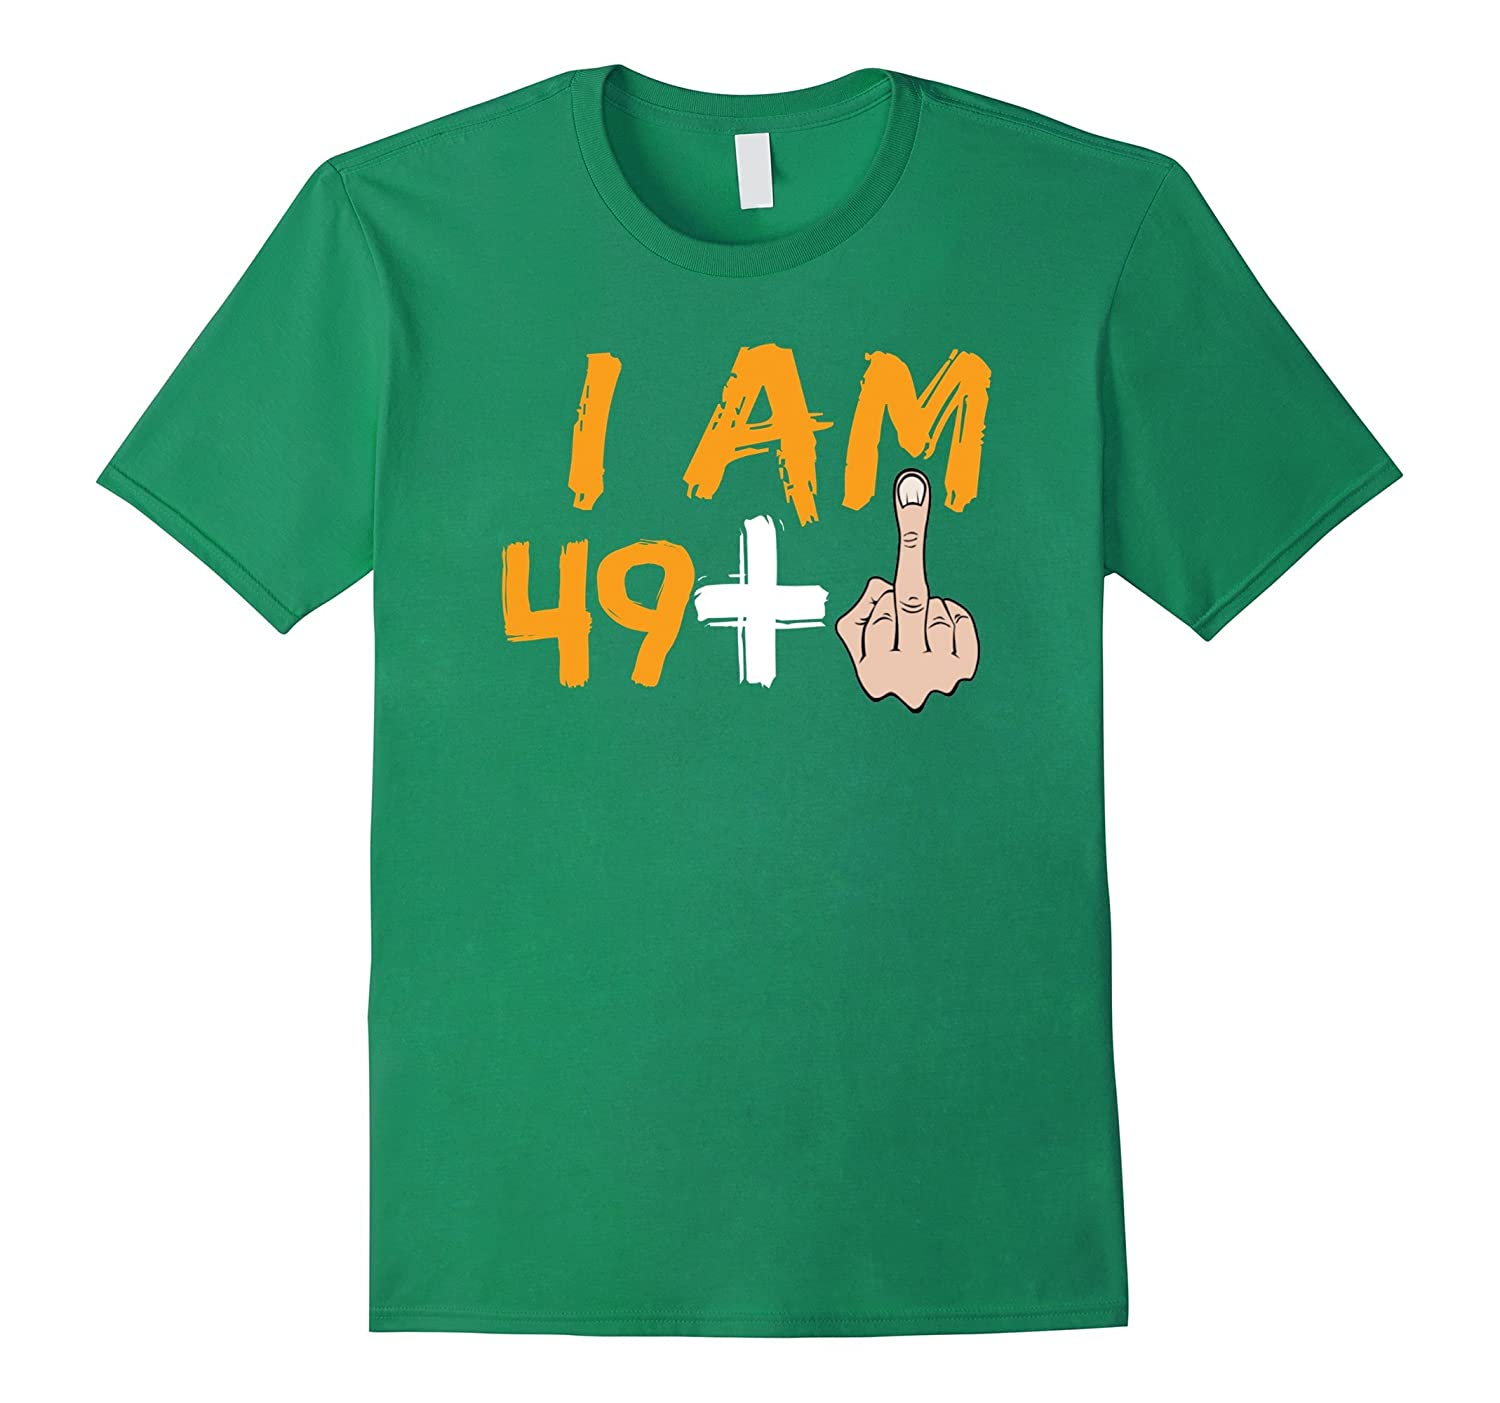 50th birthday Gift ideas Funny T shirt For men and women-ah my shirt one gift